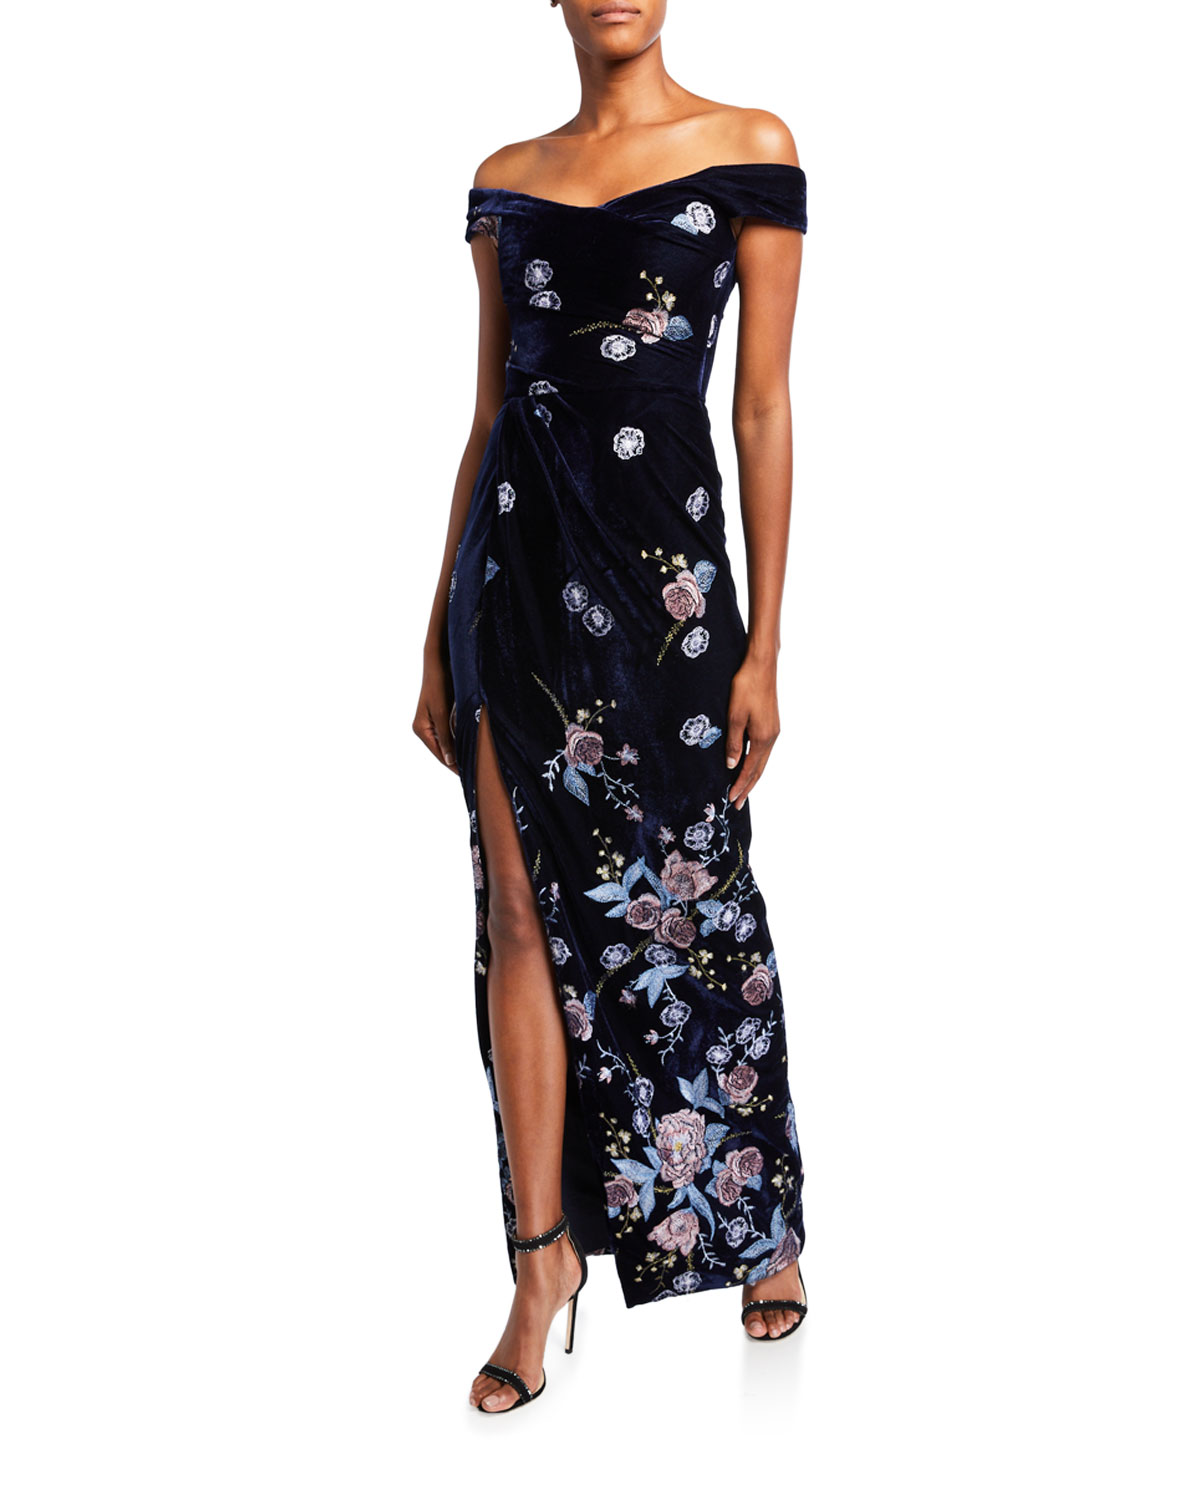 Marchesa Notte Tops OFF-THE-SHOULDER FLORAL EMBROIDERED VELVET GOWN WITH SLIT